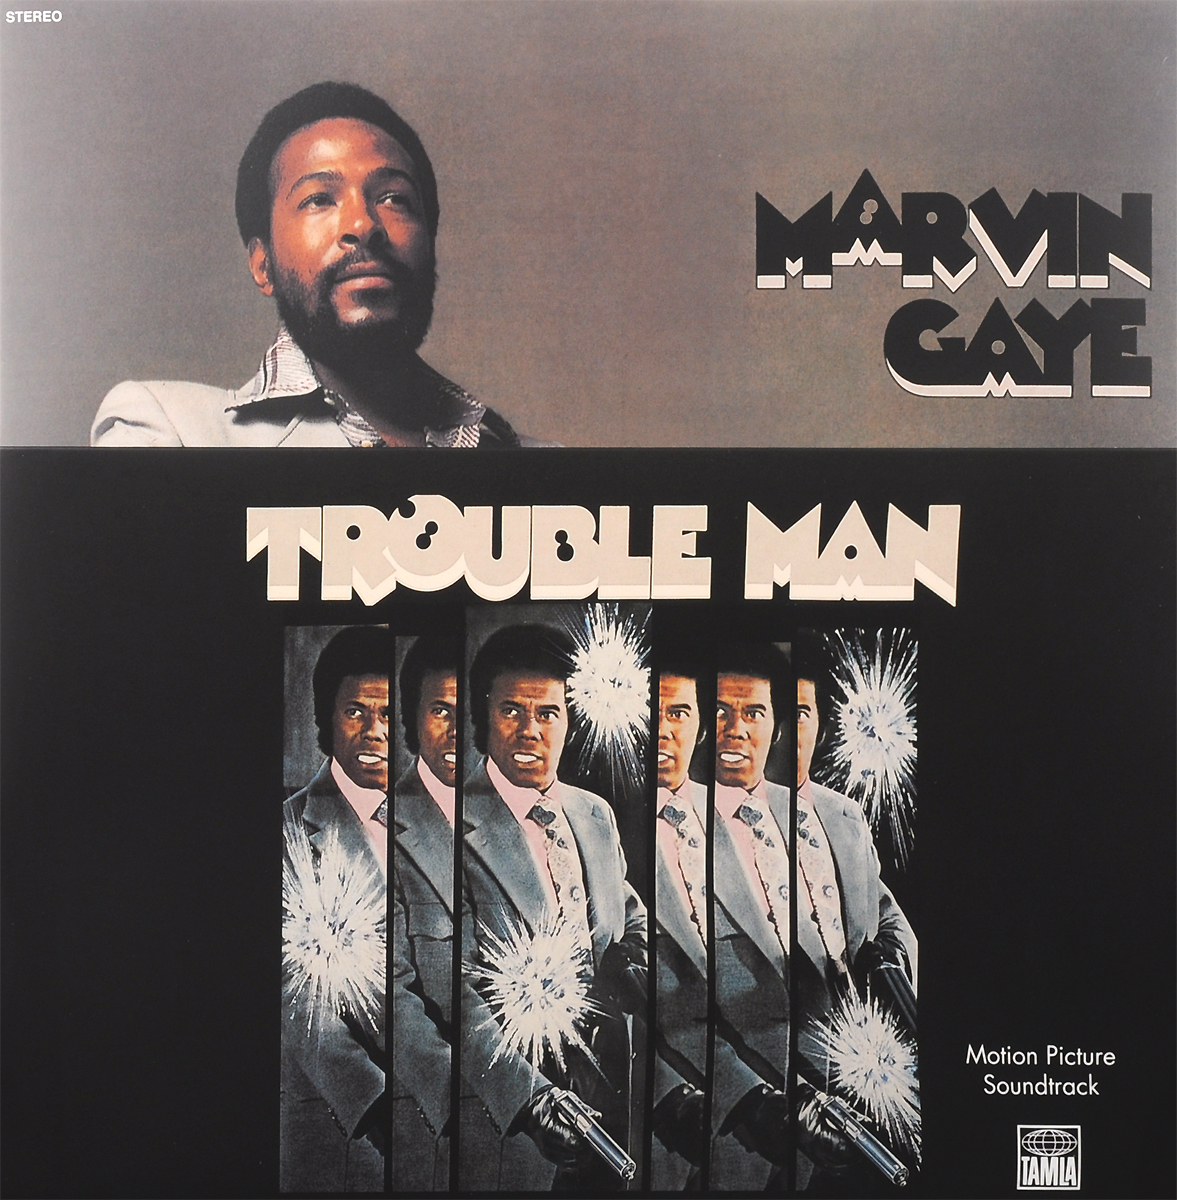 Марвин Гэй Marvin Gaye. Trouble Man. Motion Picture Soundtrack (LP) марвин гэй marvin gaye a tribute to the great nat king cole lp